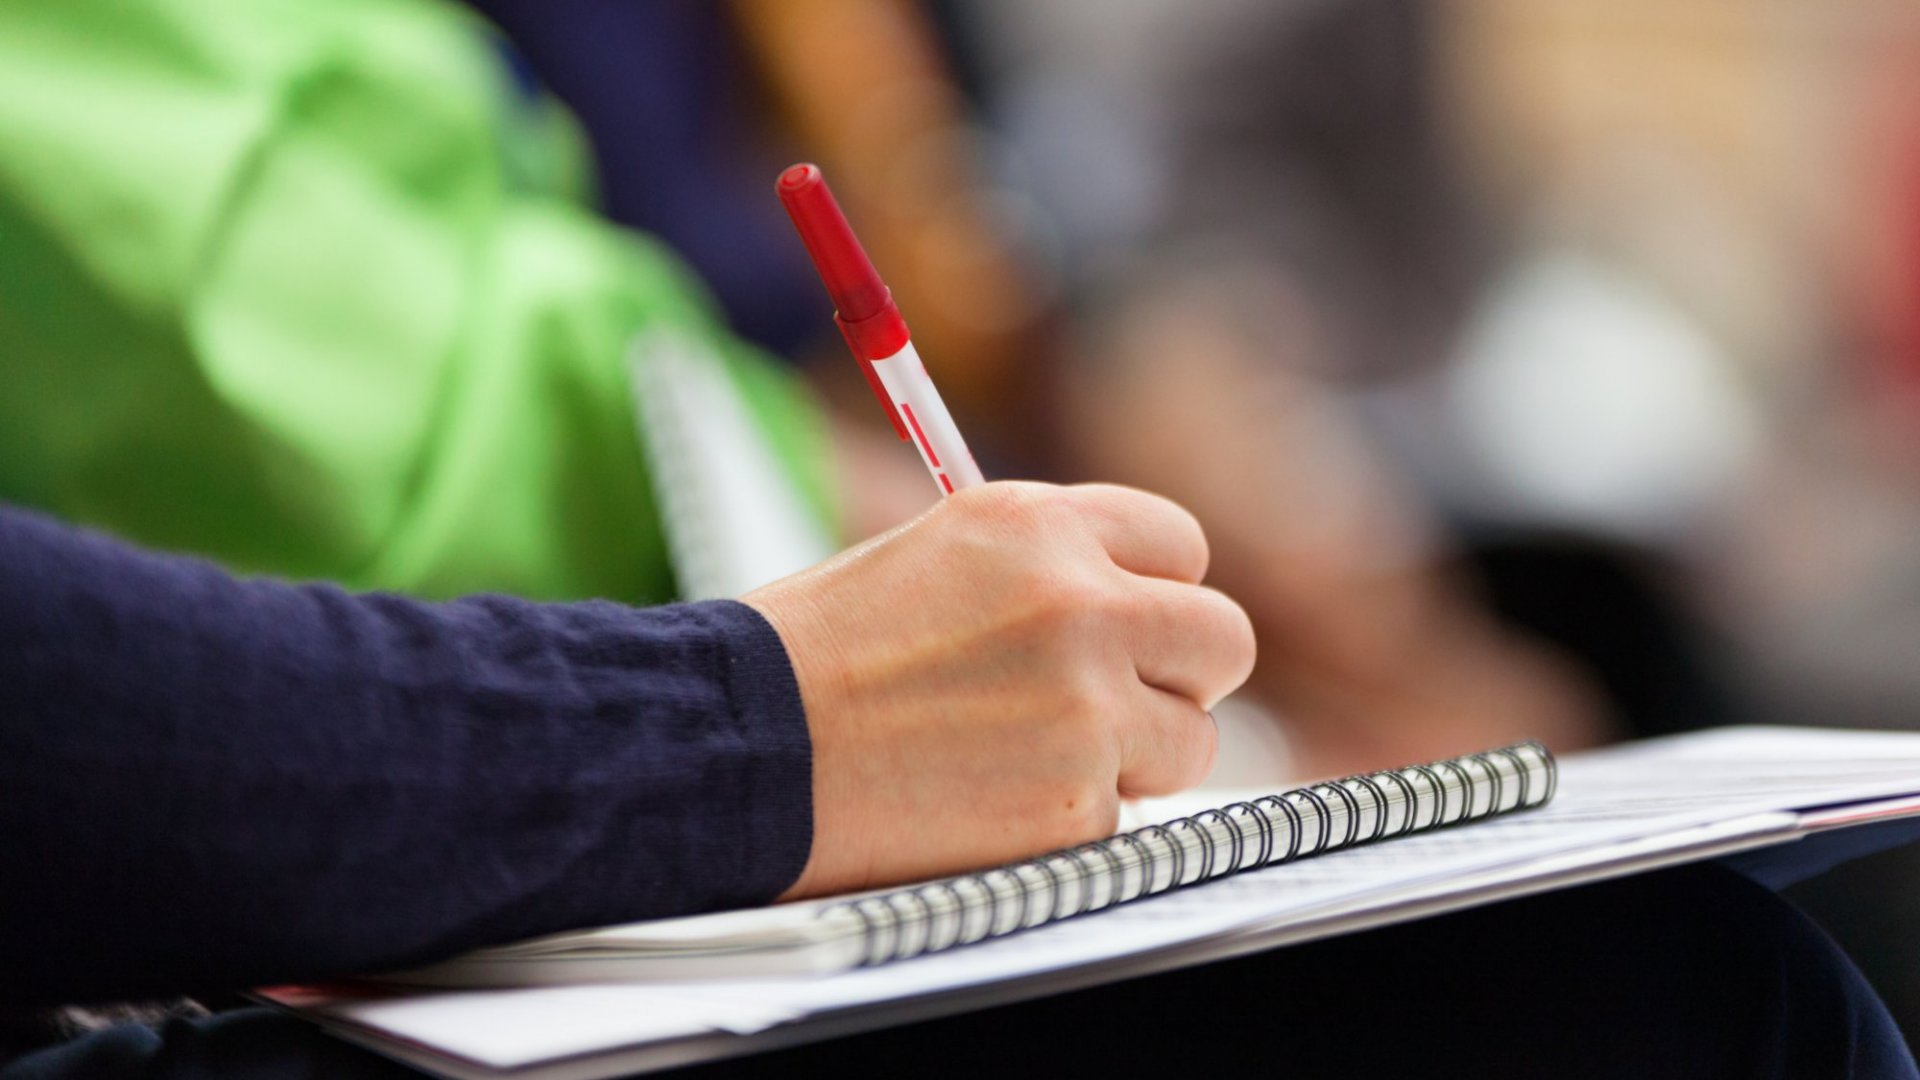 How to Take Better Notes for Information Retention